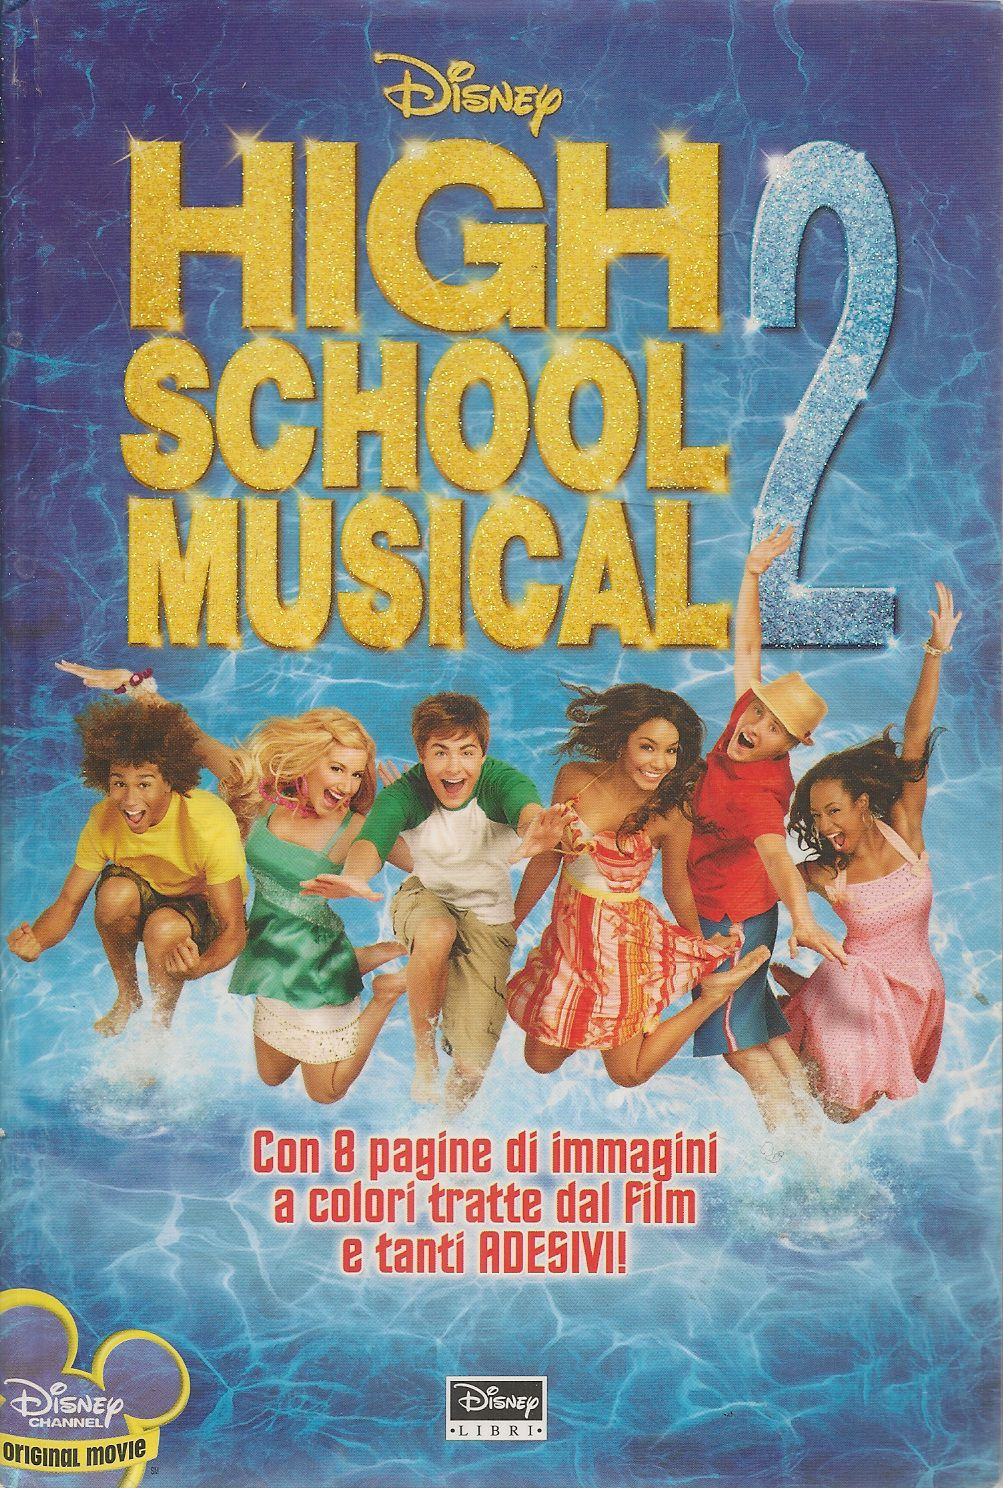 HIGH SCHOLL MUSICAL 2